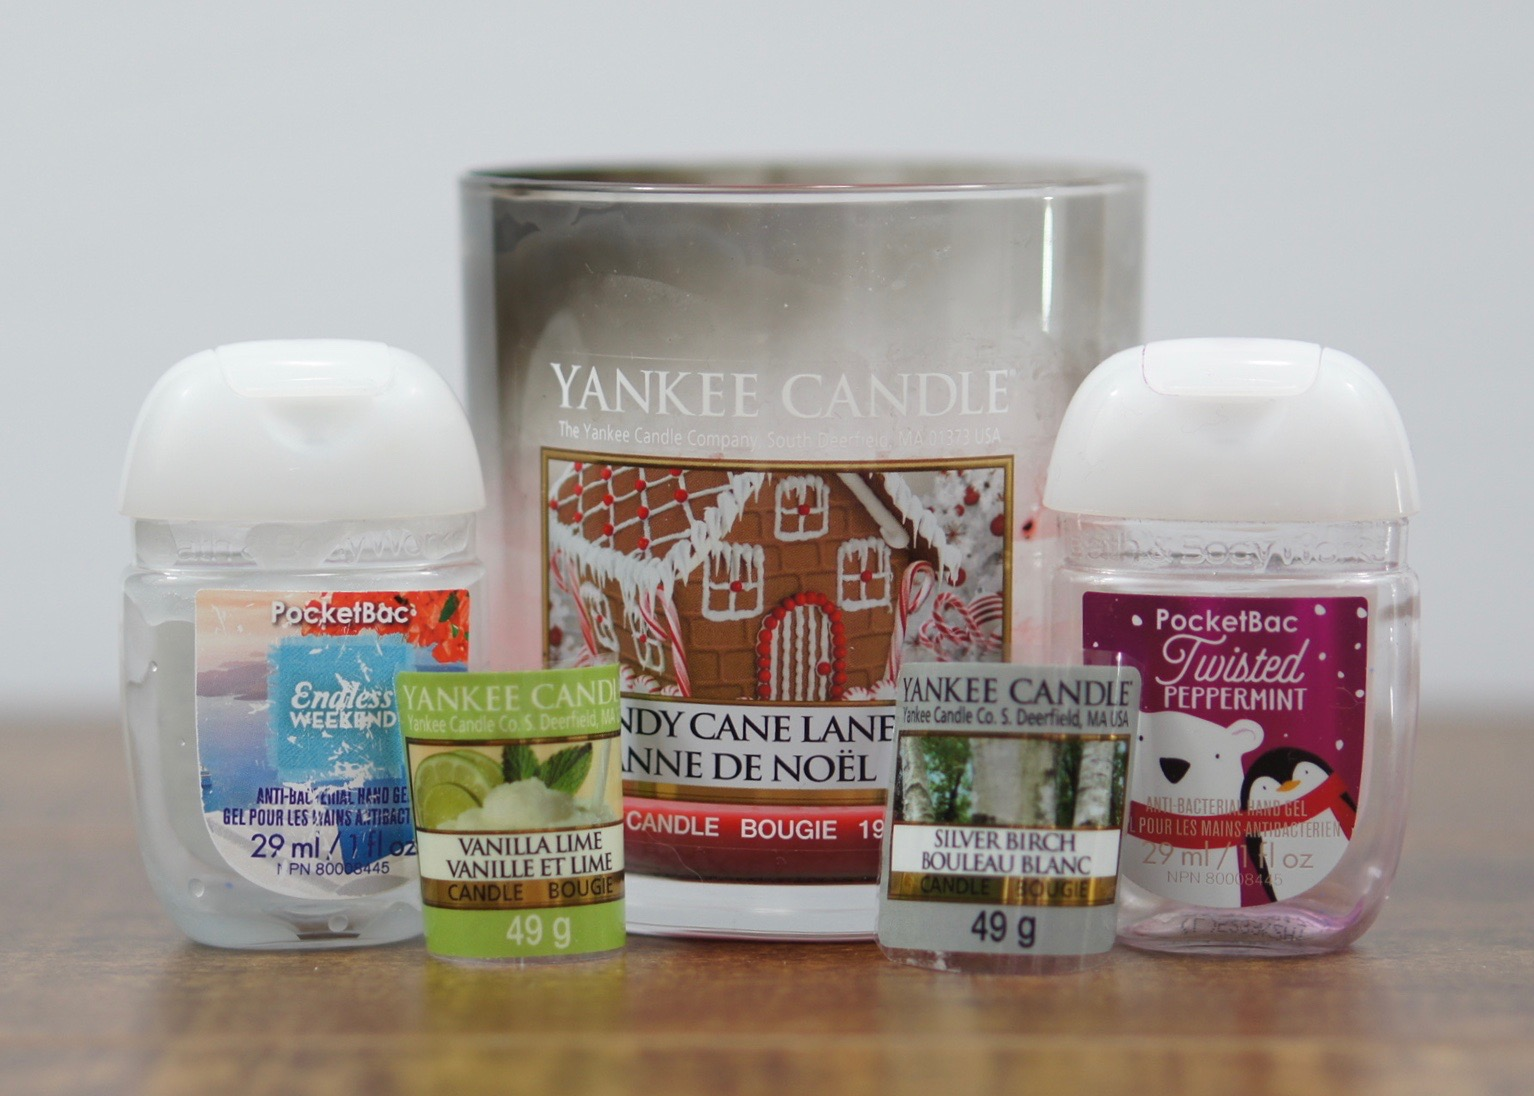 A few candles and hand sanitizers.